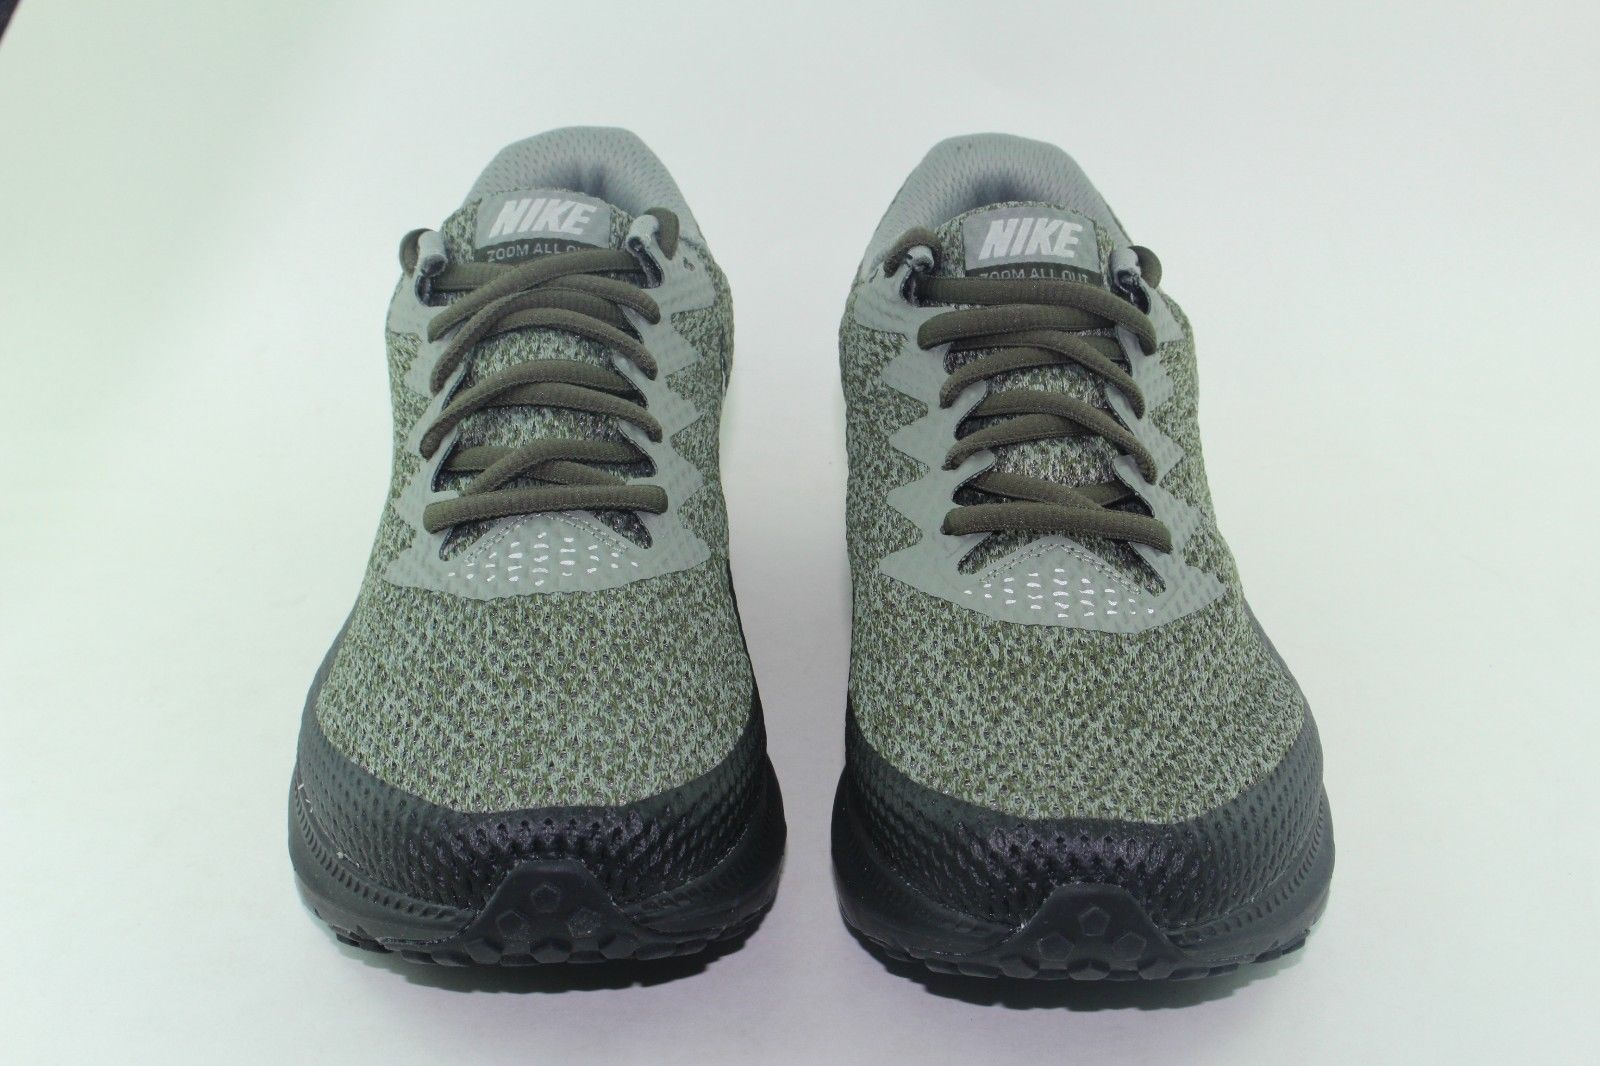 release date 97d8e 7660e NIKE ZOOM ALL OUT LOW 2 MEN SIZE 8.5 KHAKI COMFORT RUNNING